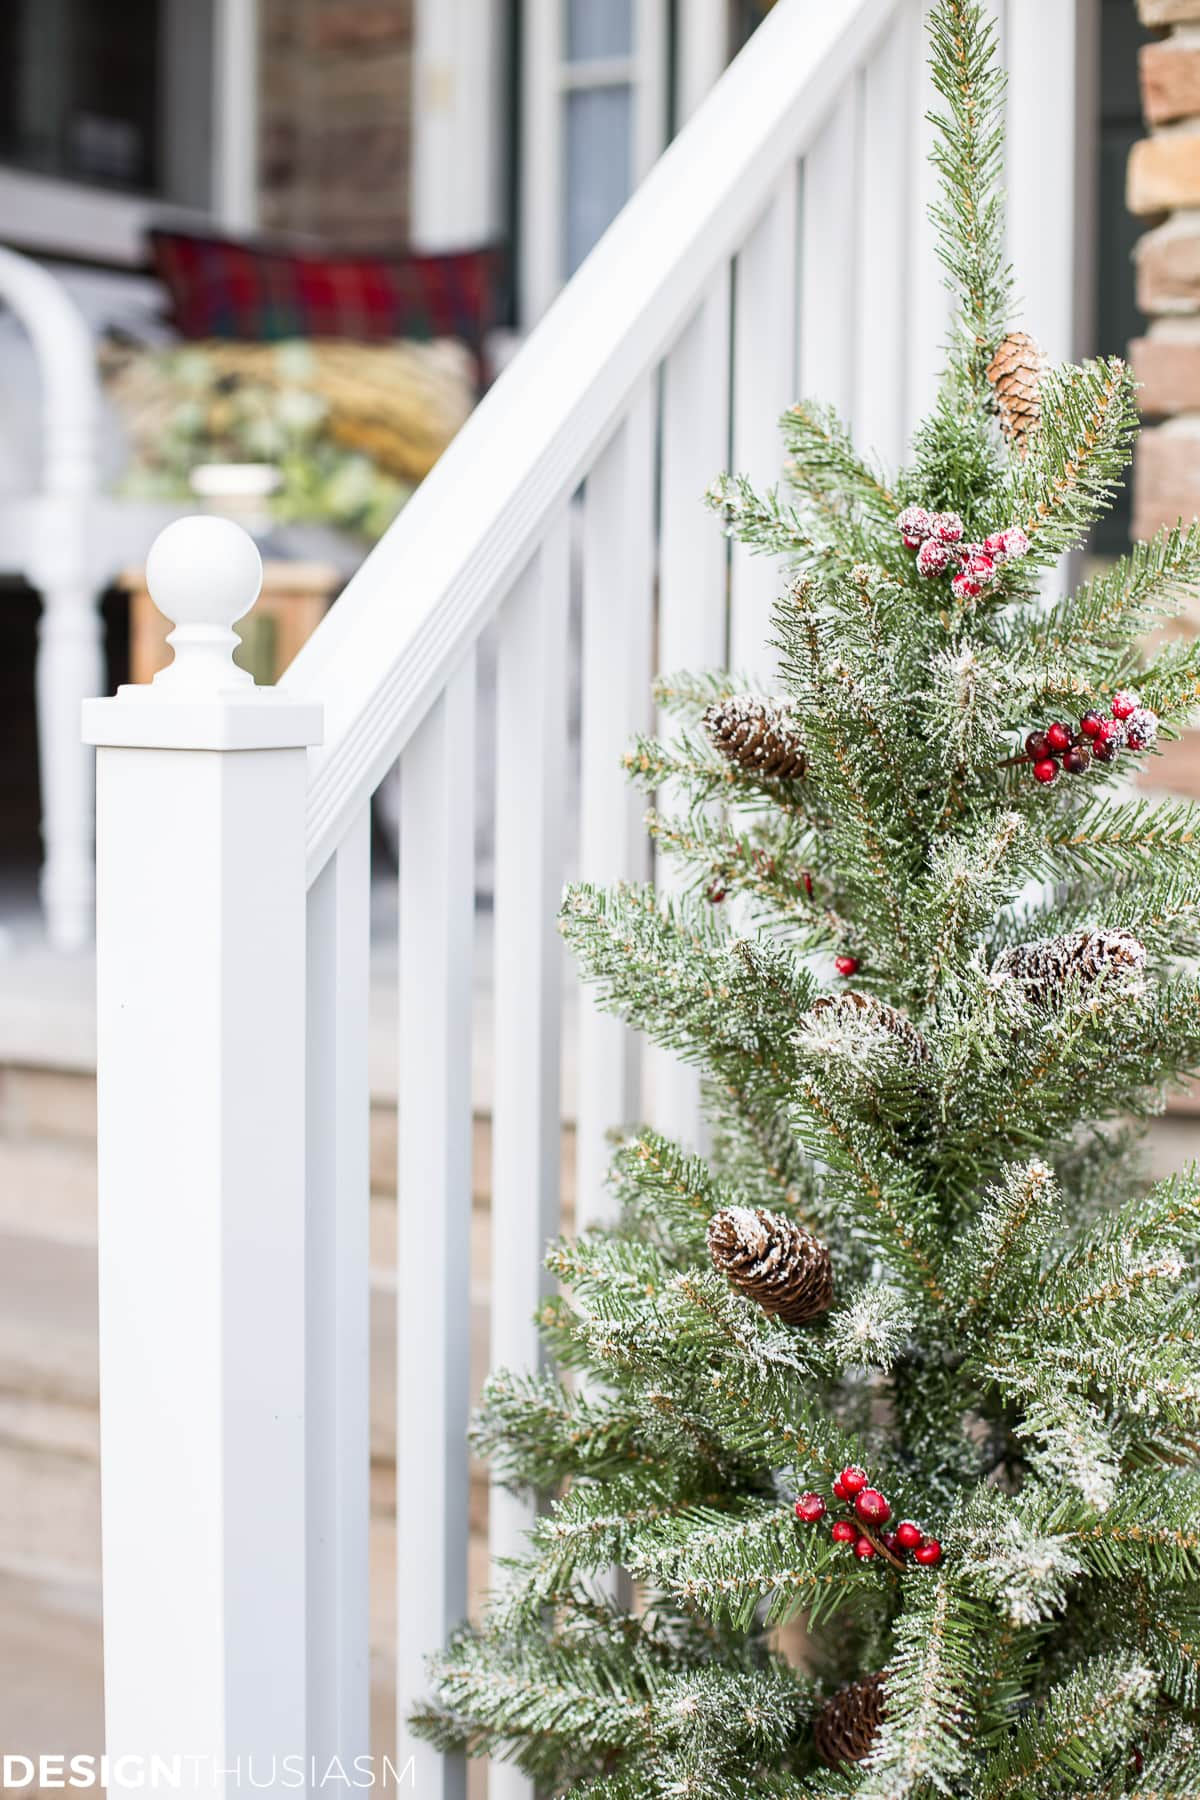 easy outdoor christmas decorating ideas for a tiny front porch designthusiasmcom - Outdoor Christmas Decorating Ideas Front Porch